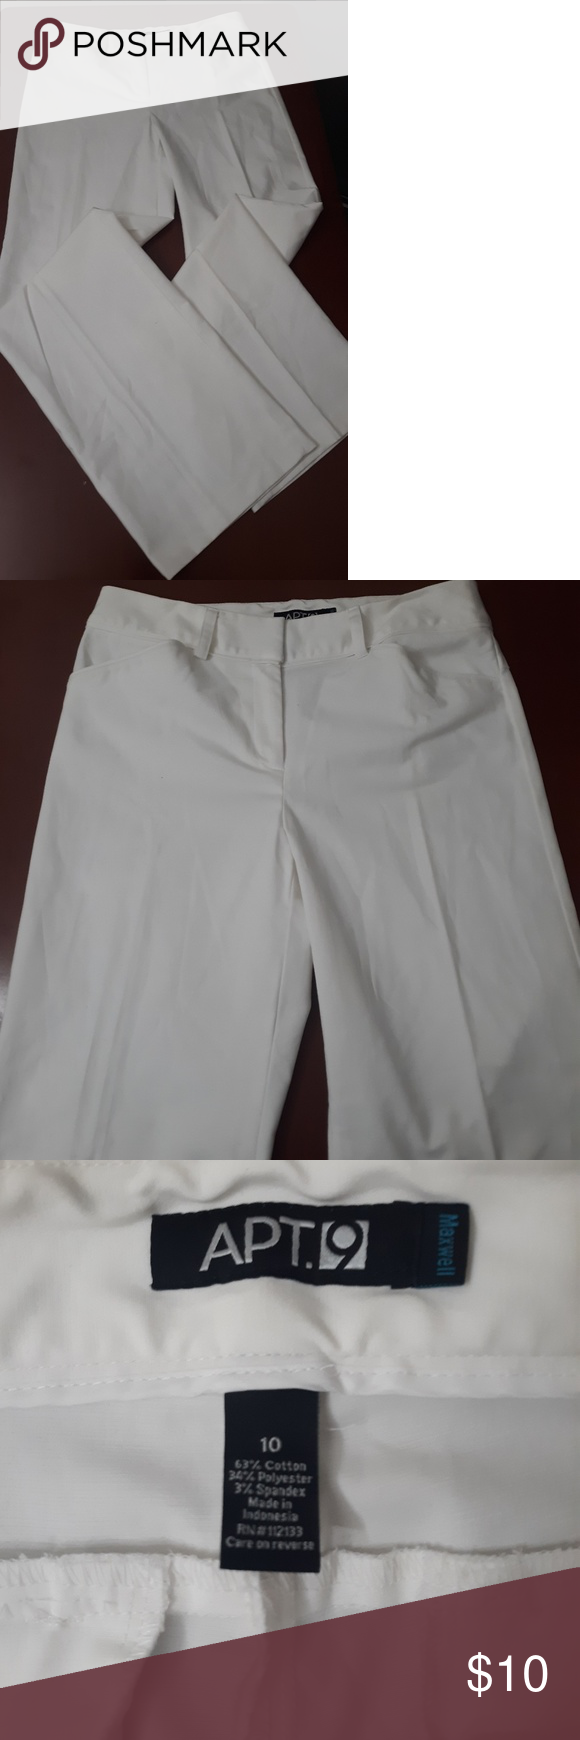 APT 9 white slacks  size 10 White slacks Apt. 9 Pants Wide Leg #whiteslacks APT 9 white slacks  size 10 White slacks Apt. 9 Pants Wide Leg #whiteslacks